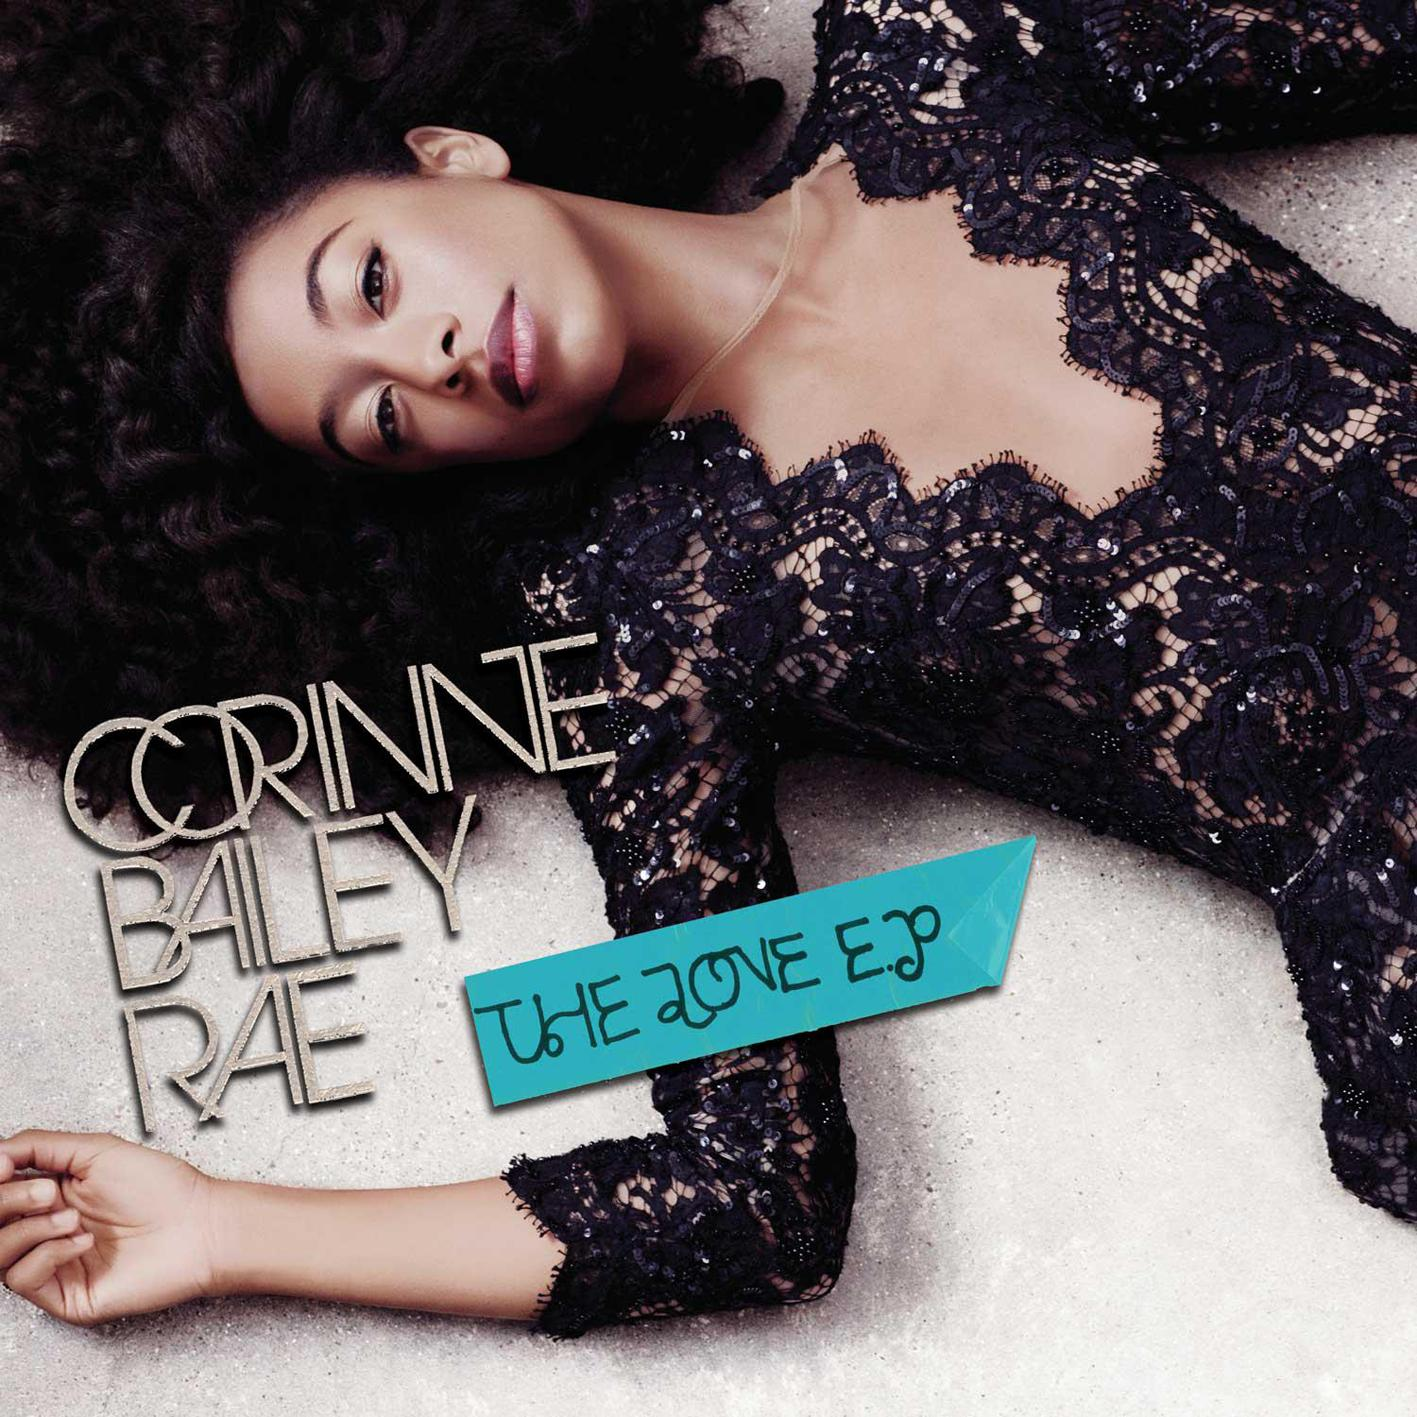 corinne-bailey-rae-love-ep